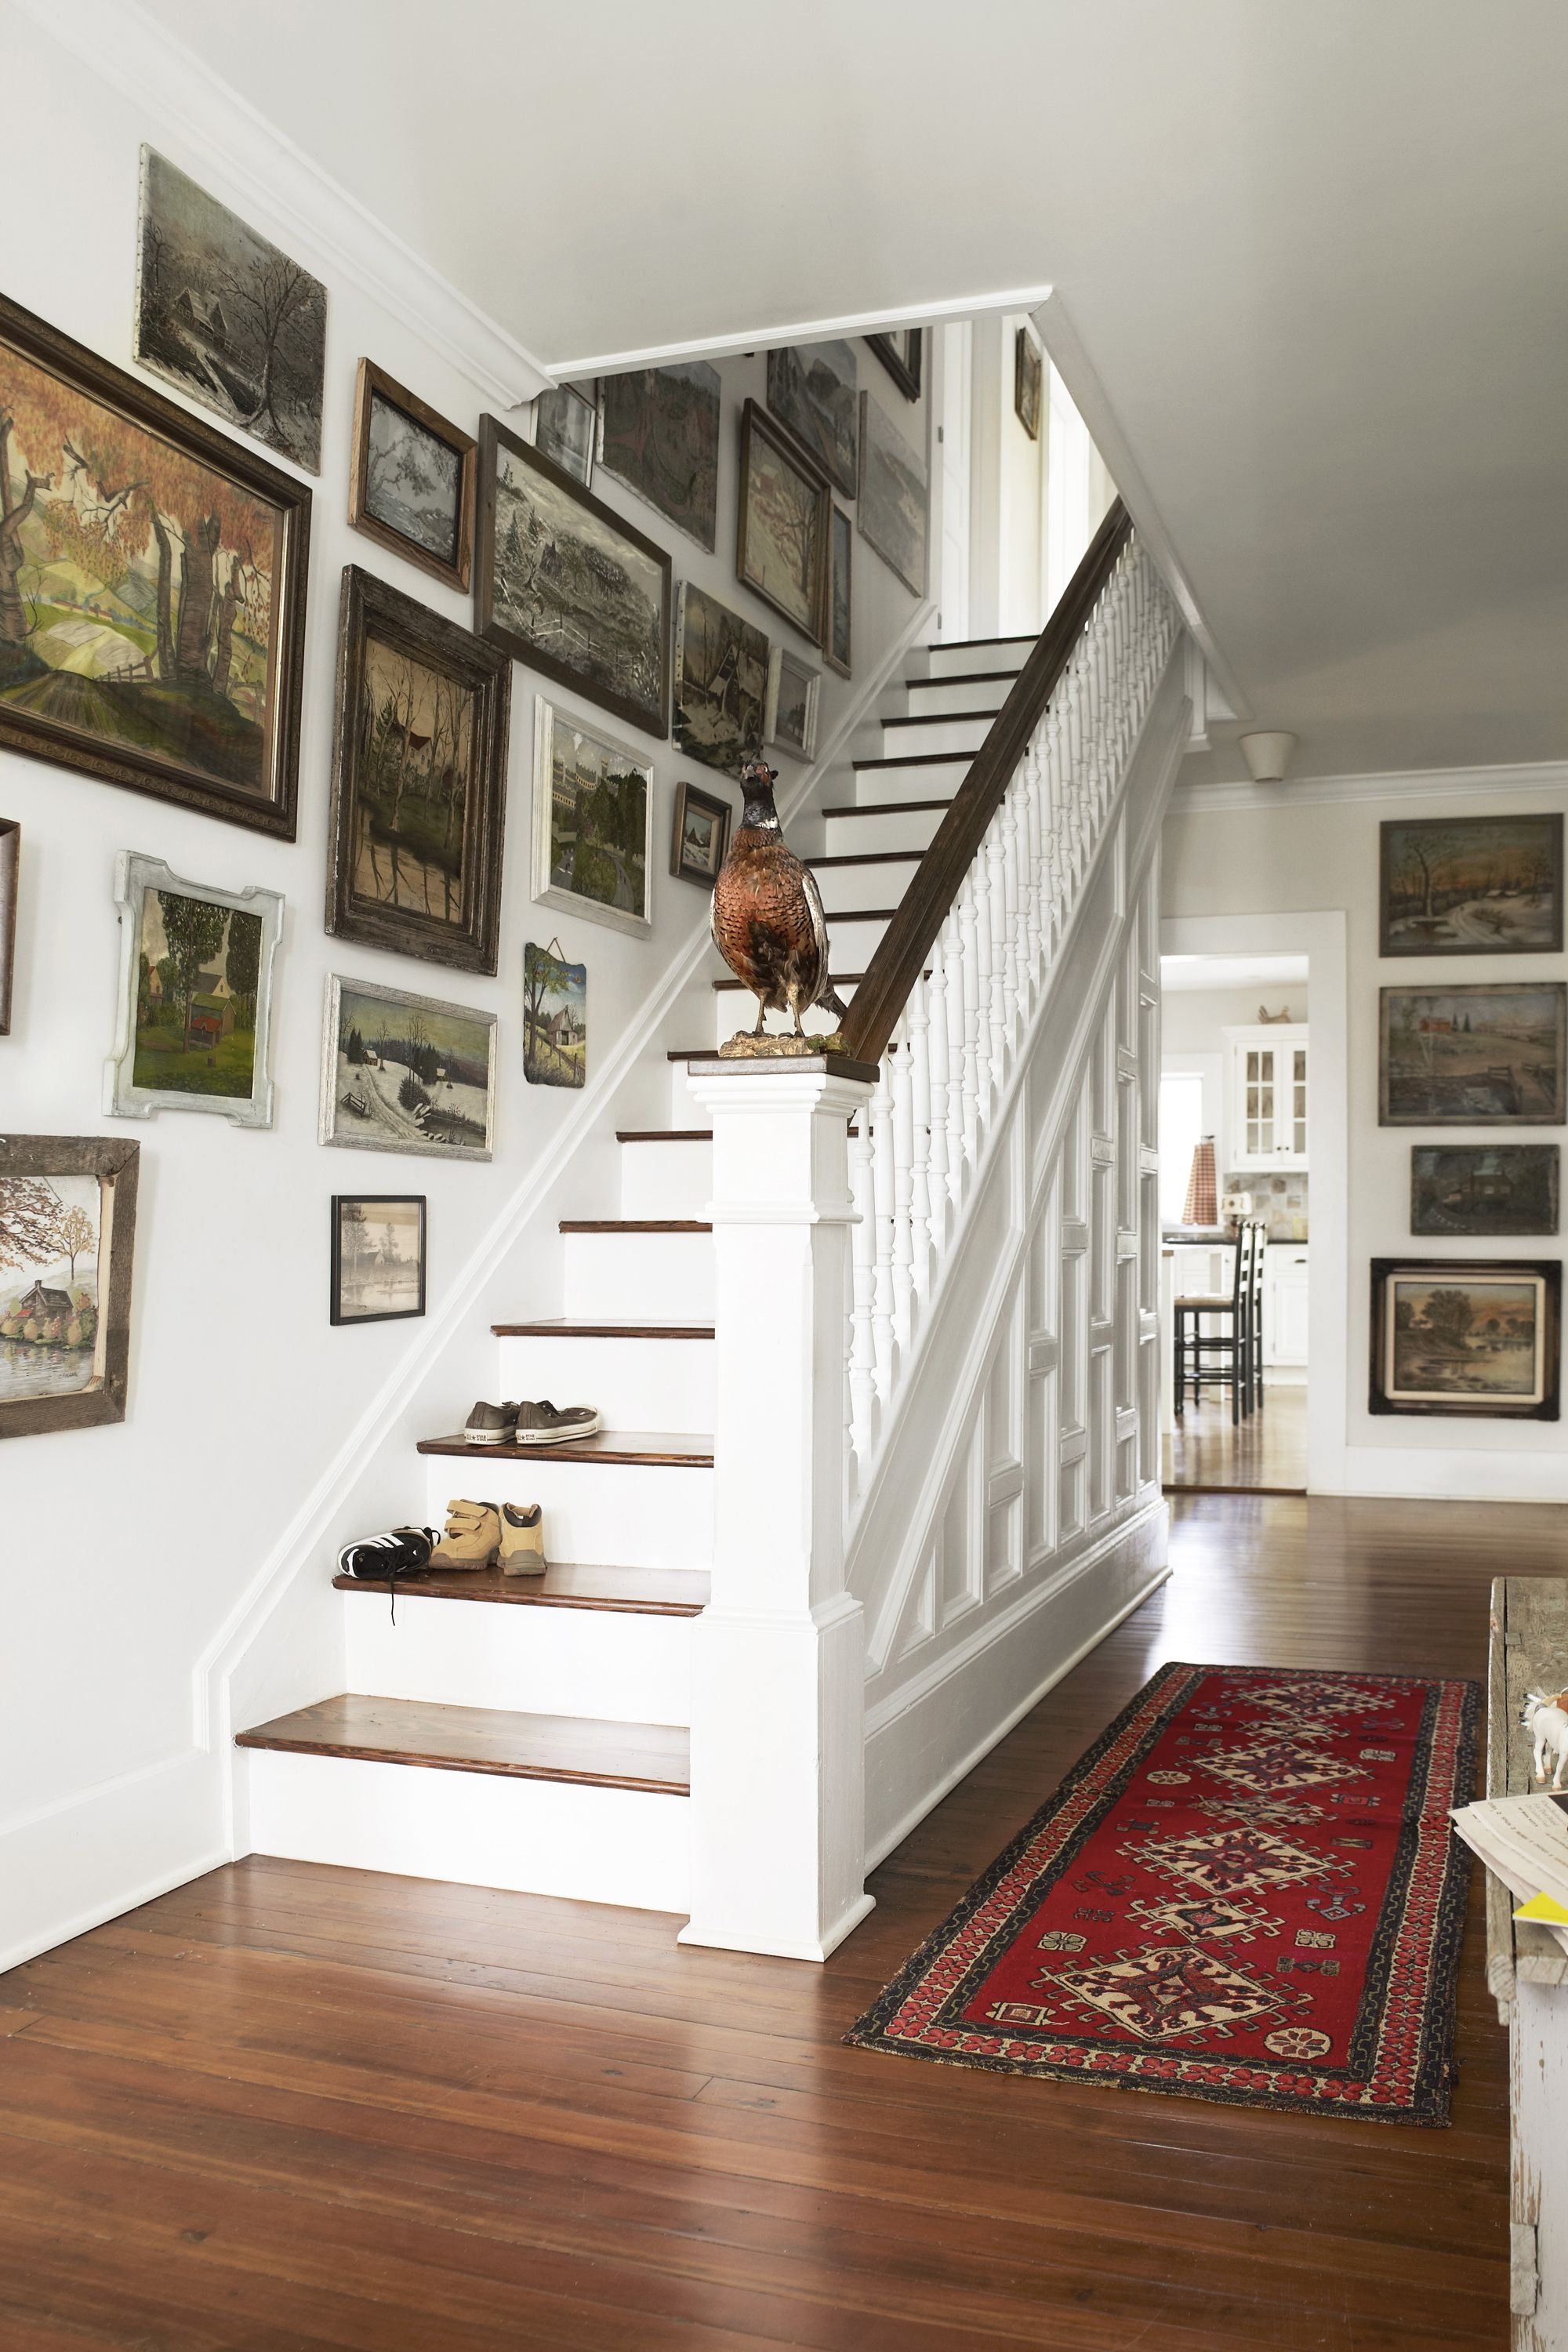 55 Best Staircase Ideas Top Ways To Decorate A Stairway | New House Steps Design | Kerala Home | Outside | Home Stair Marble | Duplex House | Residential